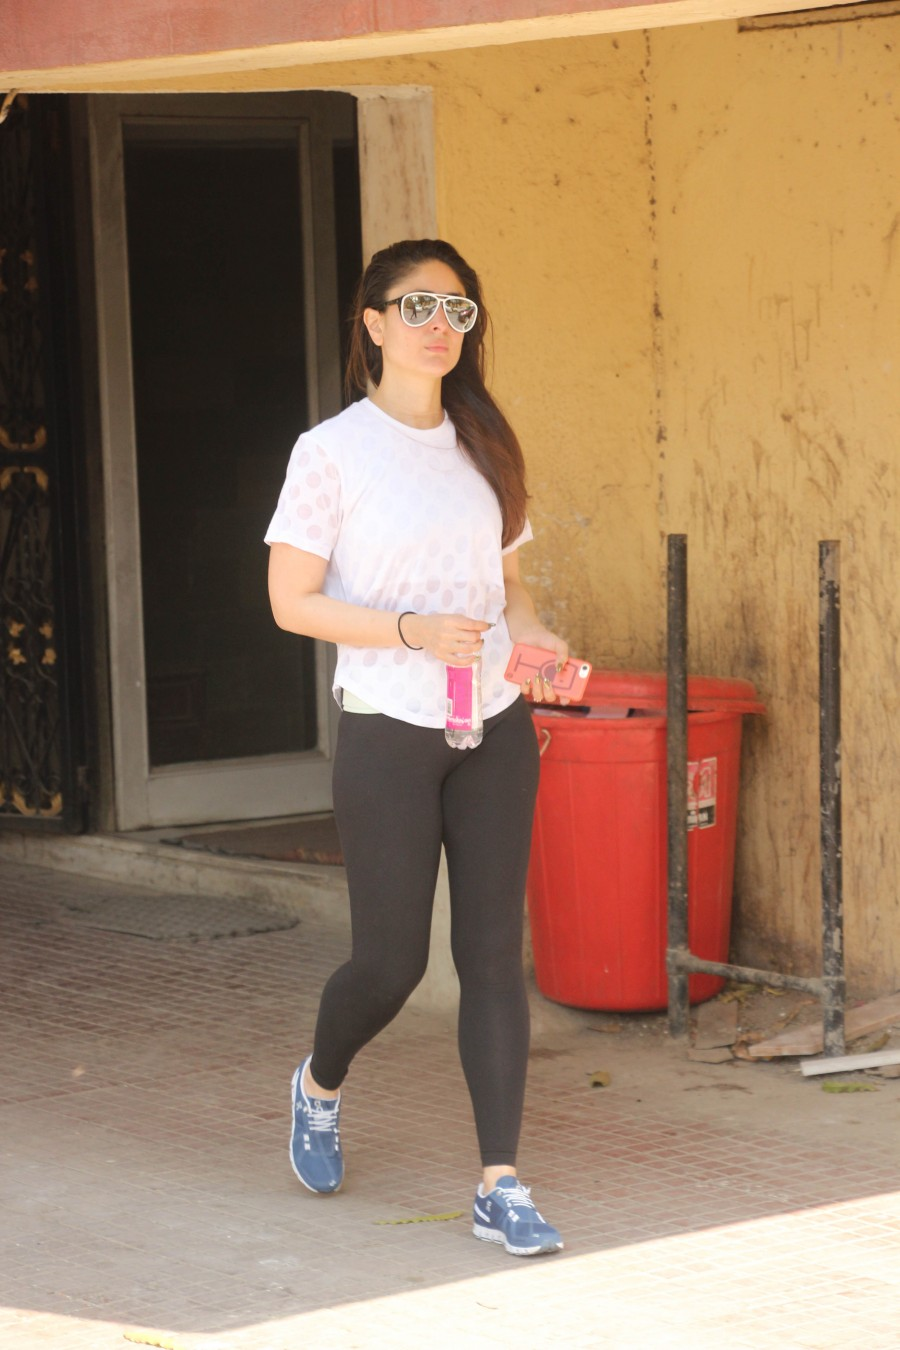 Kareena Kapoor Khan,Kareena Kapoor,Kareena Kapoor at gym,Kareena Kapoor Khan at gym,Kareena Kapoor Khan latest pics,Kareena Kapoor Khan latest imagesss,Kareena Kapoor Khan latest stills,Kareena Kapoor Khan latest pictures,Kareena Kapoor Khan latest photos